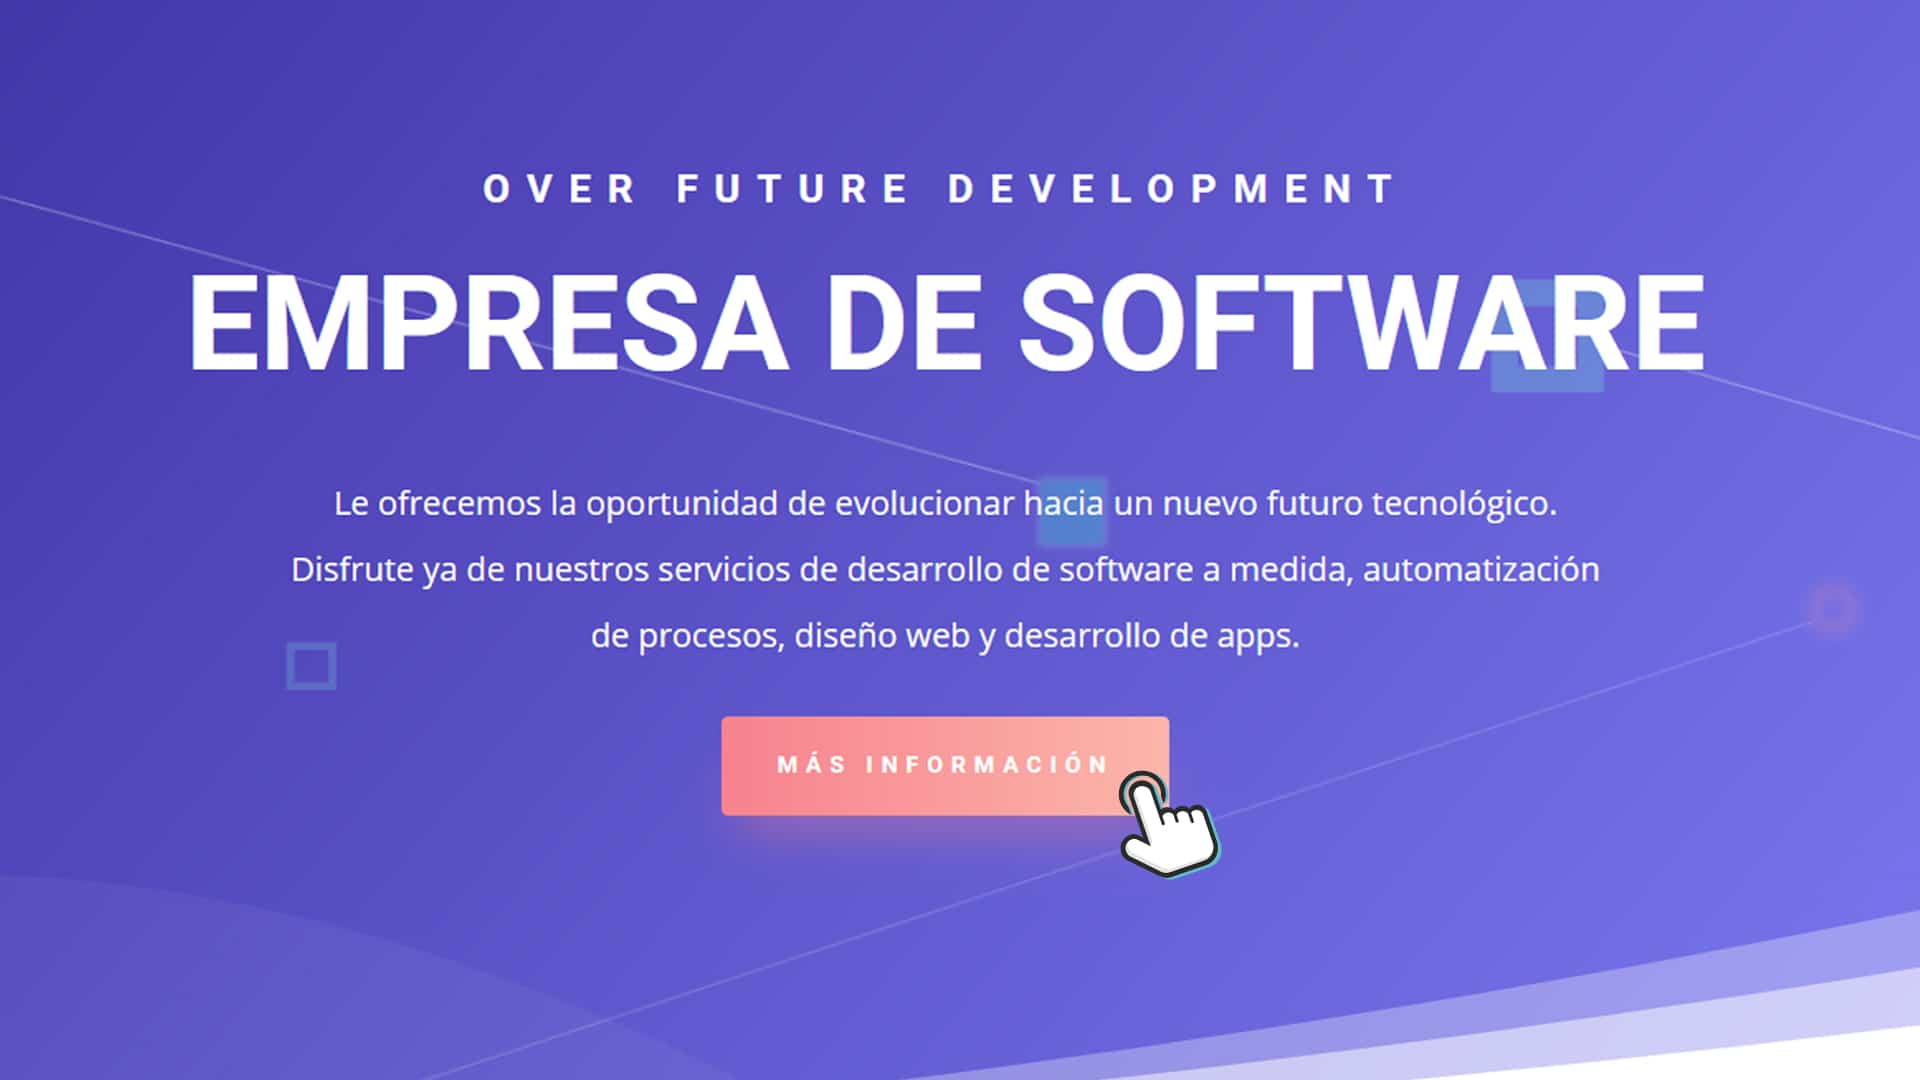 Over Future Development es una nueva marca comercial y empresa de software